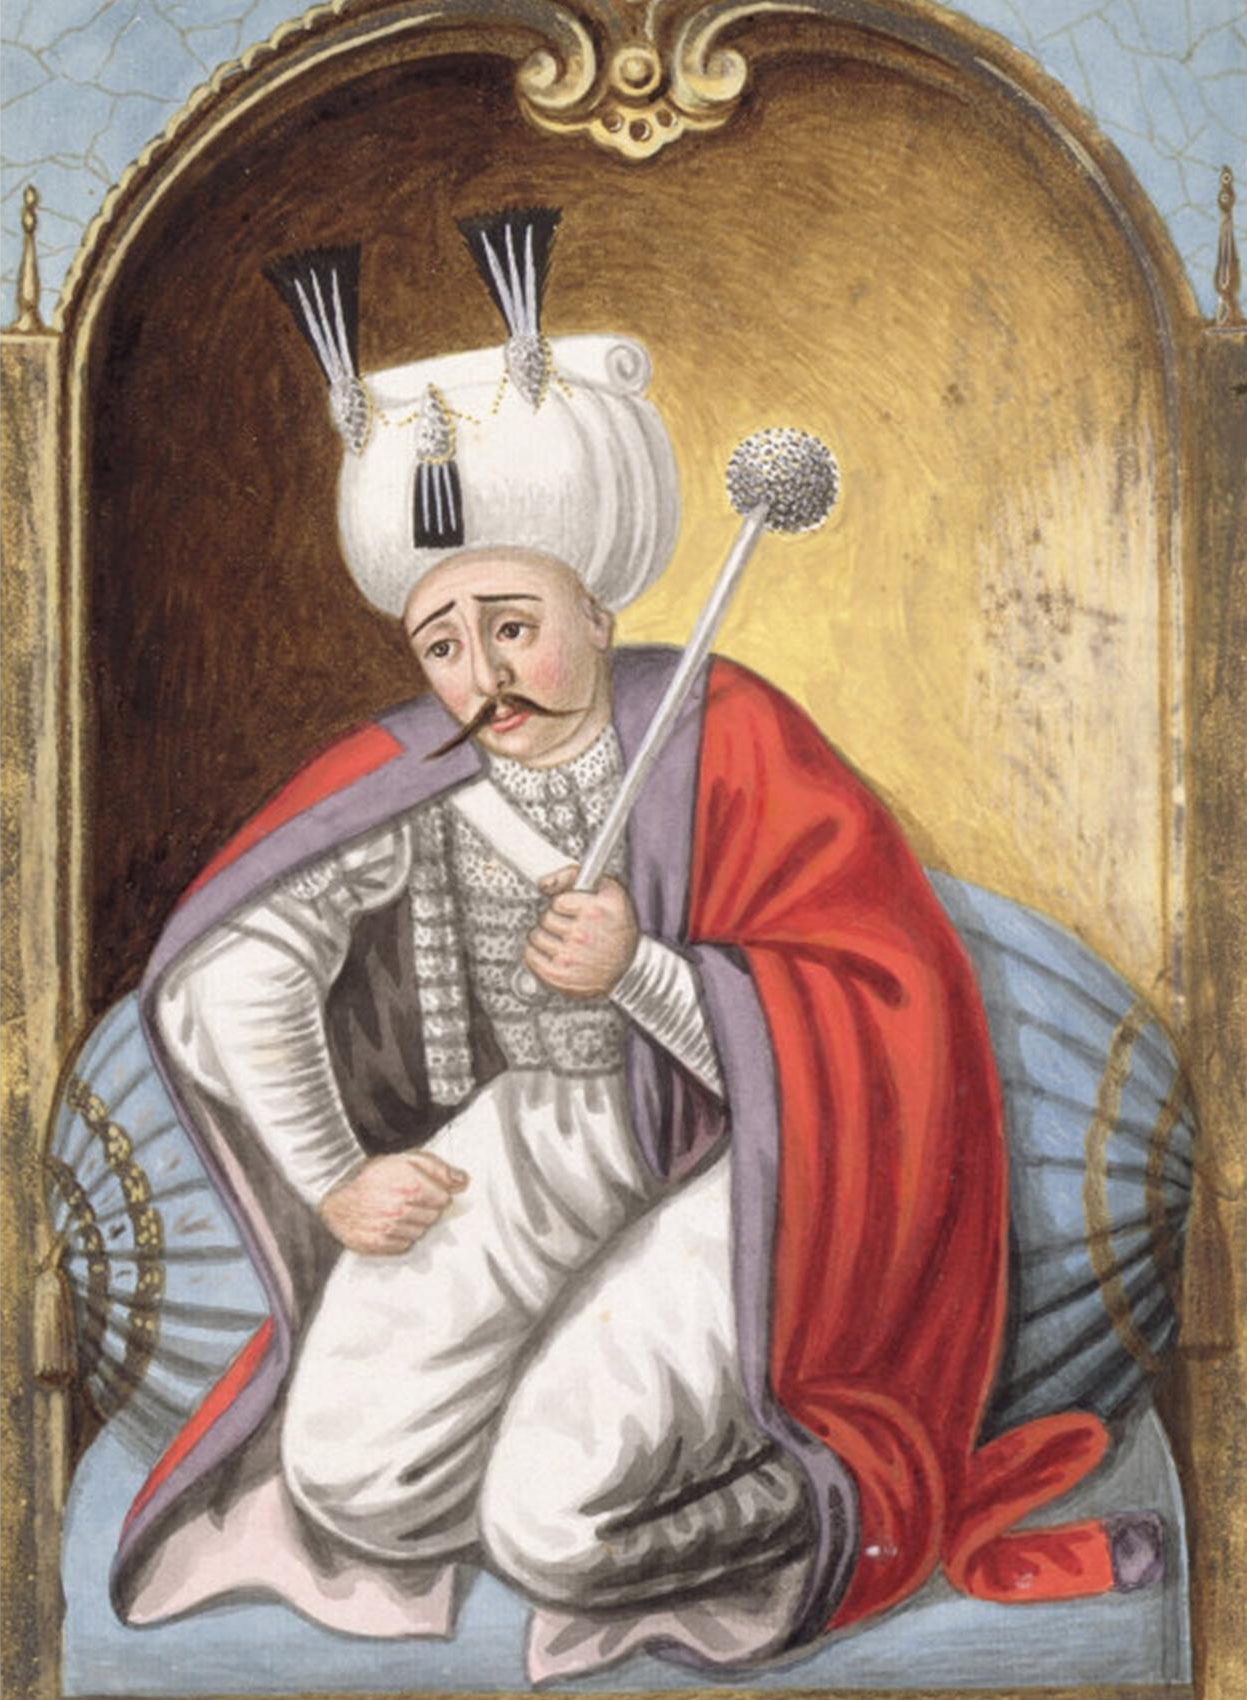 http://upload.wikimedia.org/wikipedia/commons/0/0f/Selim_I_by_John_Young.jpg